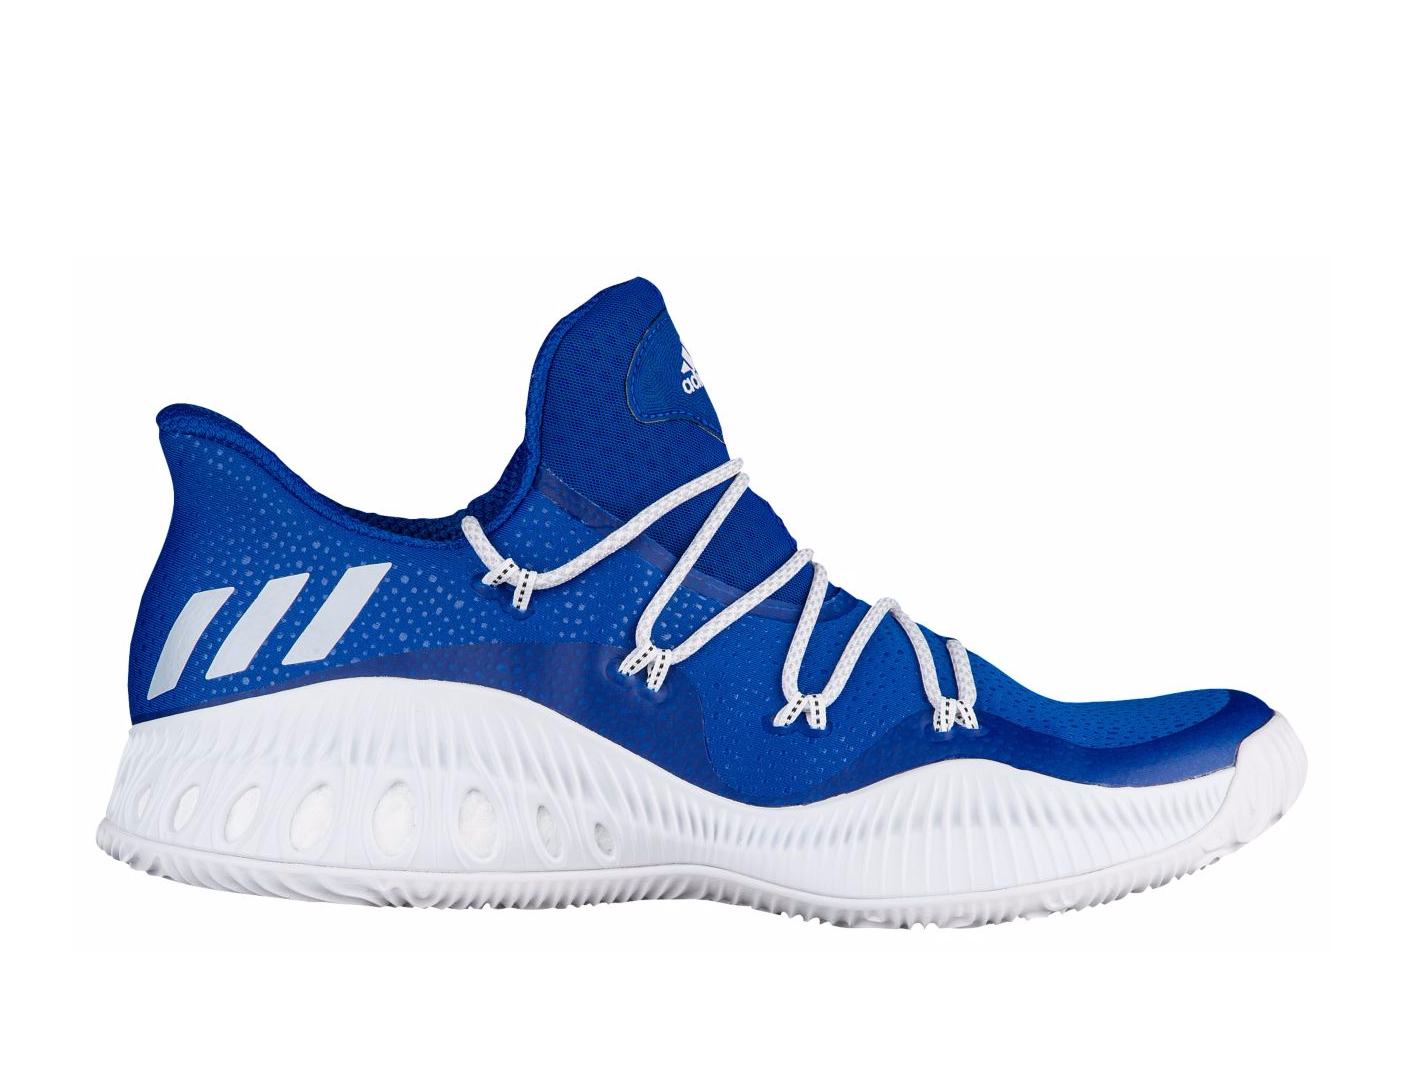 New adidas Crazy Explosive Low Colorways - Four Lows, One High ...